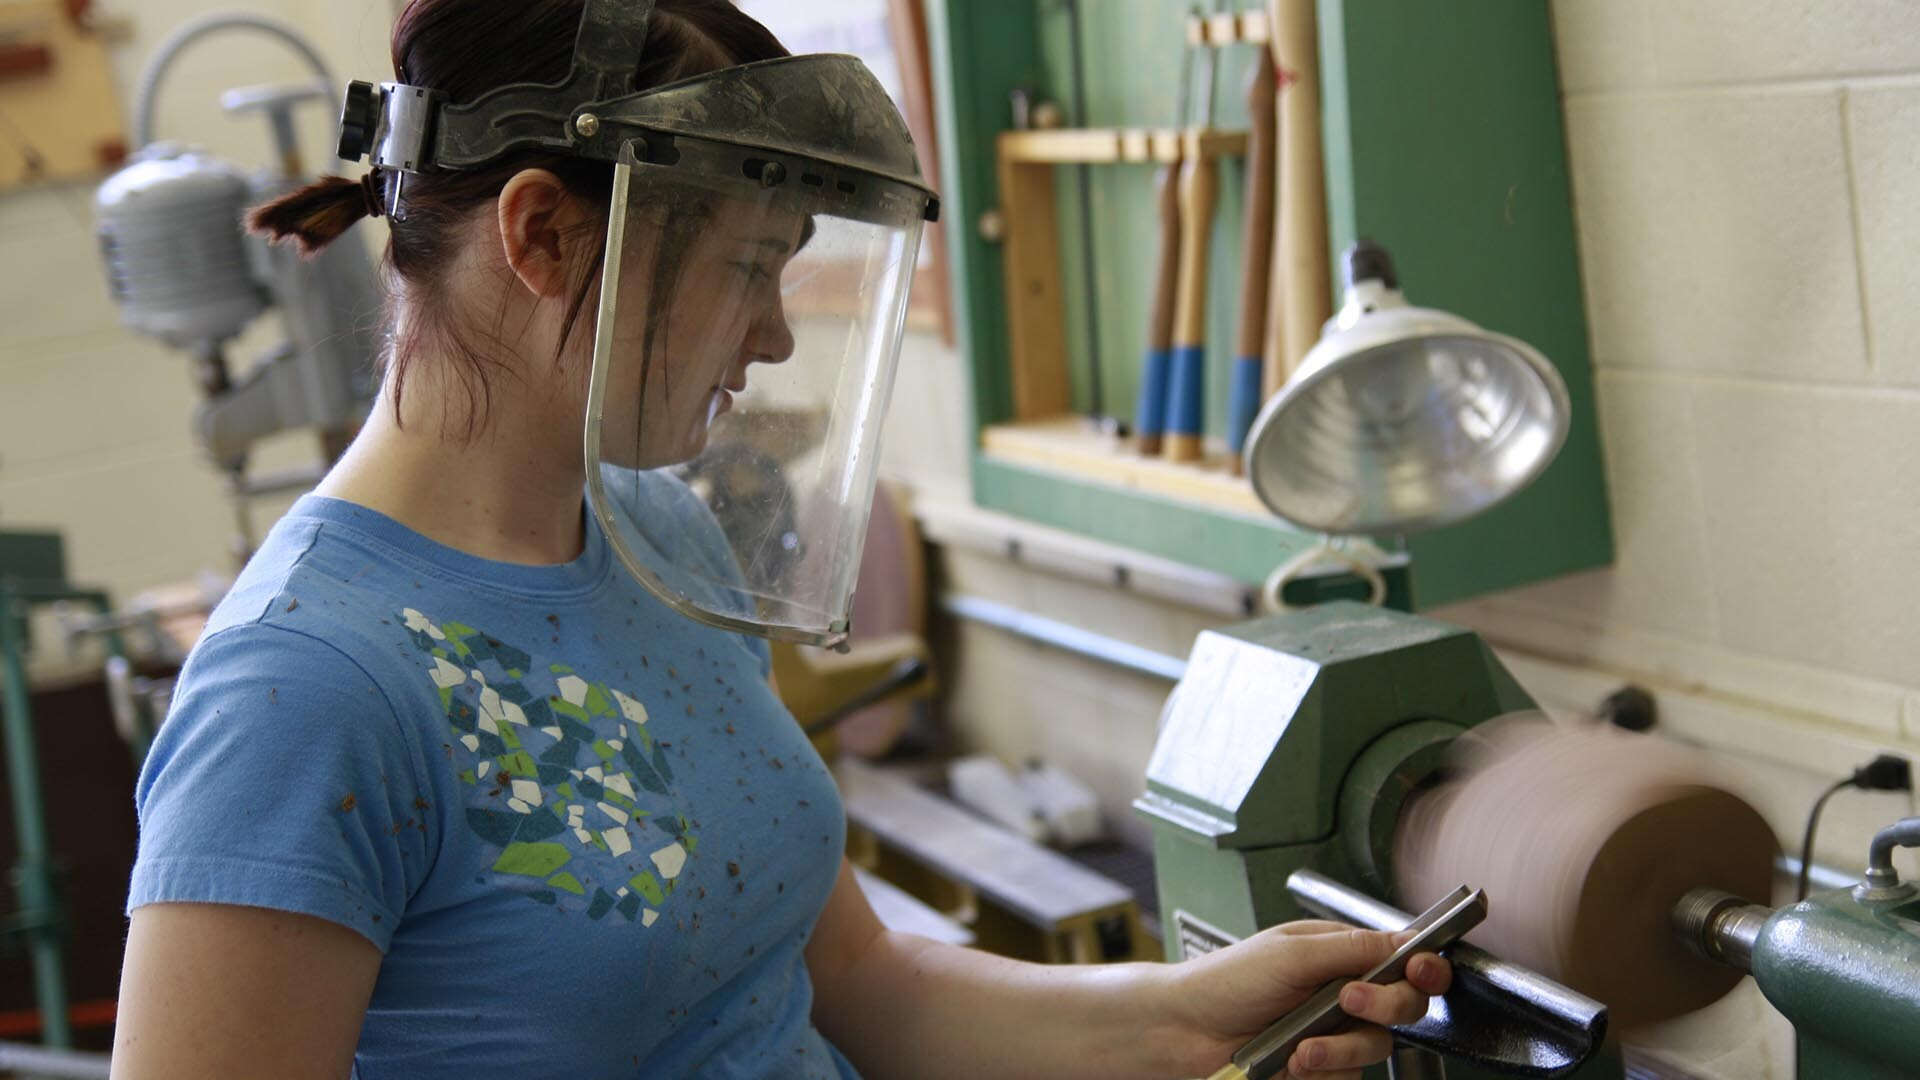 A female student using a wood working machine